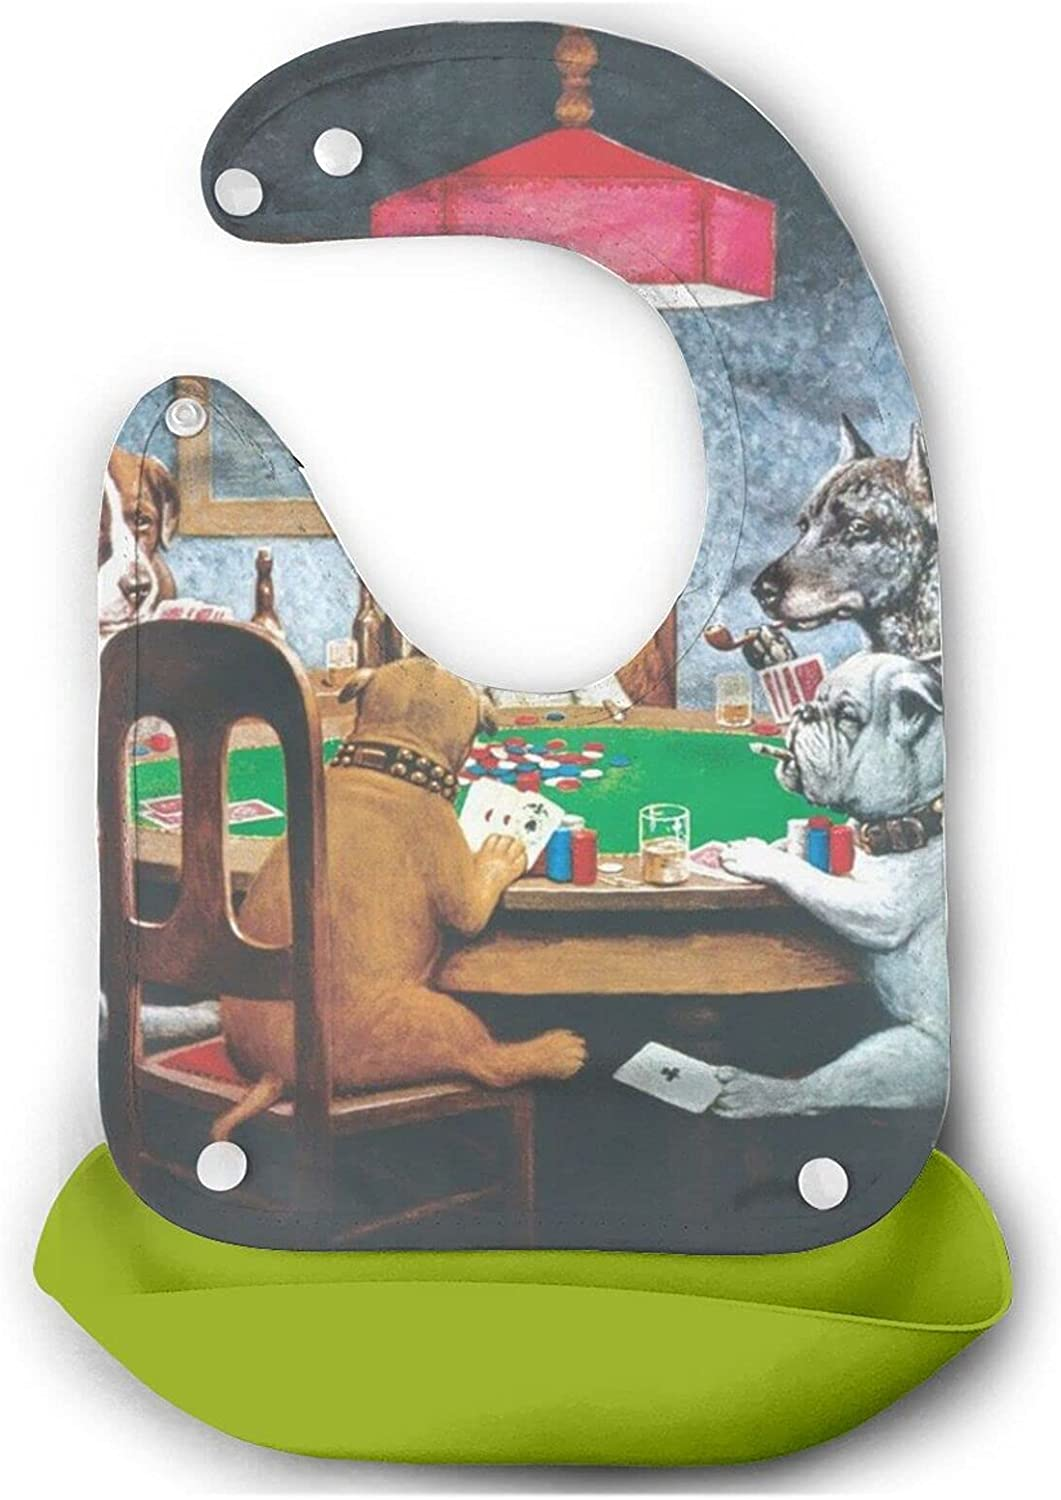 2021 autumn and winter new Dogs Playing Poker Baby Bib For Year-end annual account To Toddlers Babies Mouth Cute